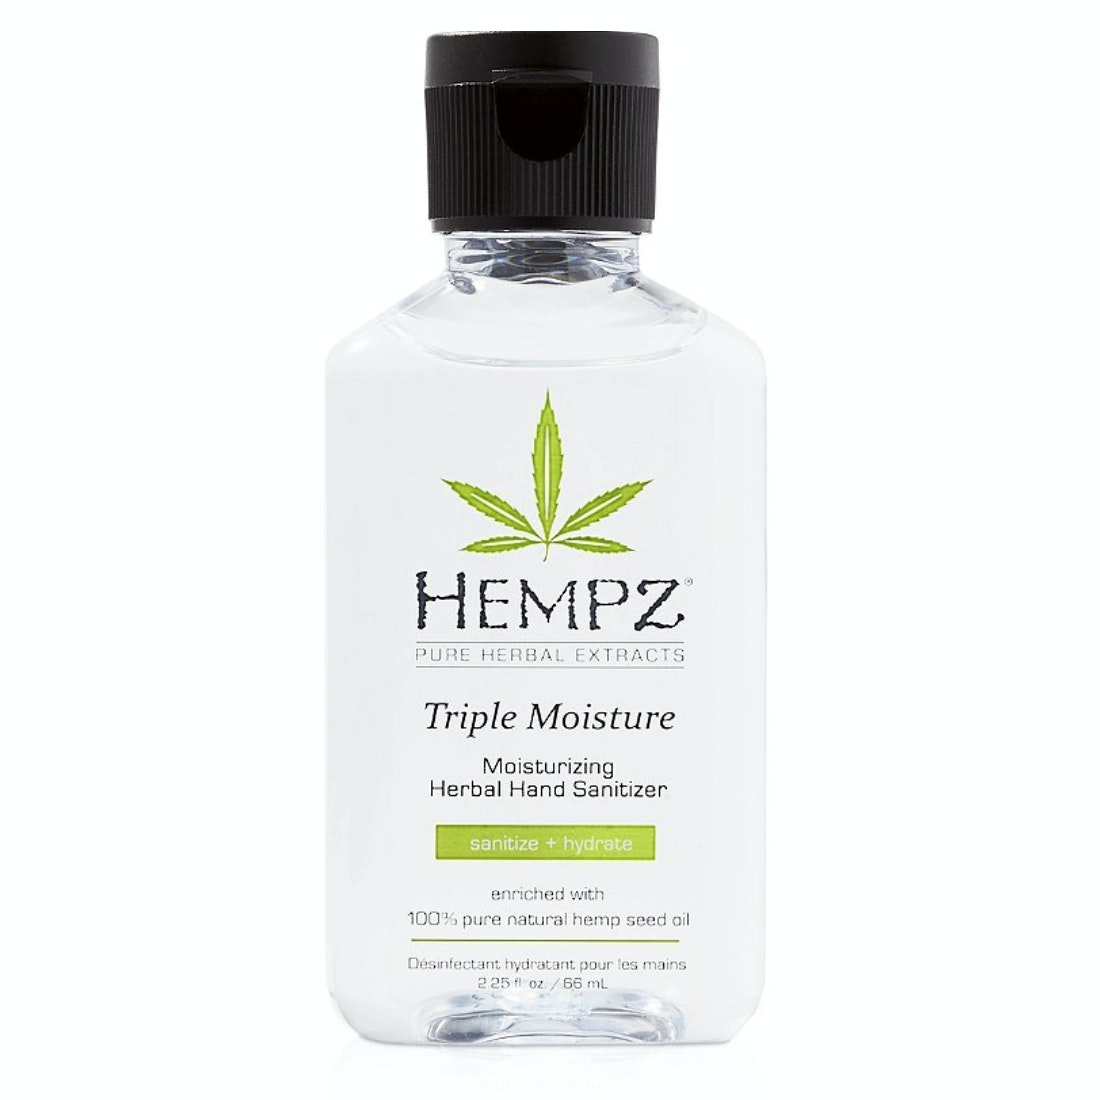 Hempz® Triple Moisture Moisturizing Herbal Hand Sanitizer